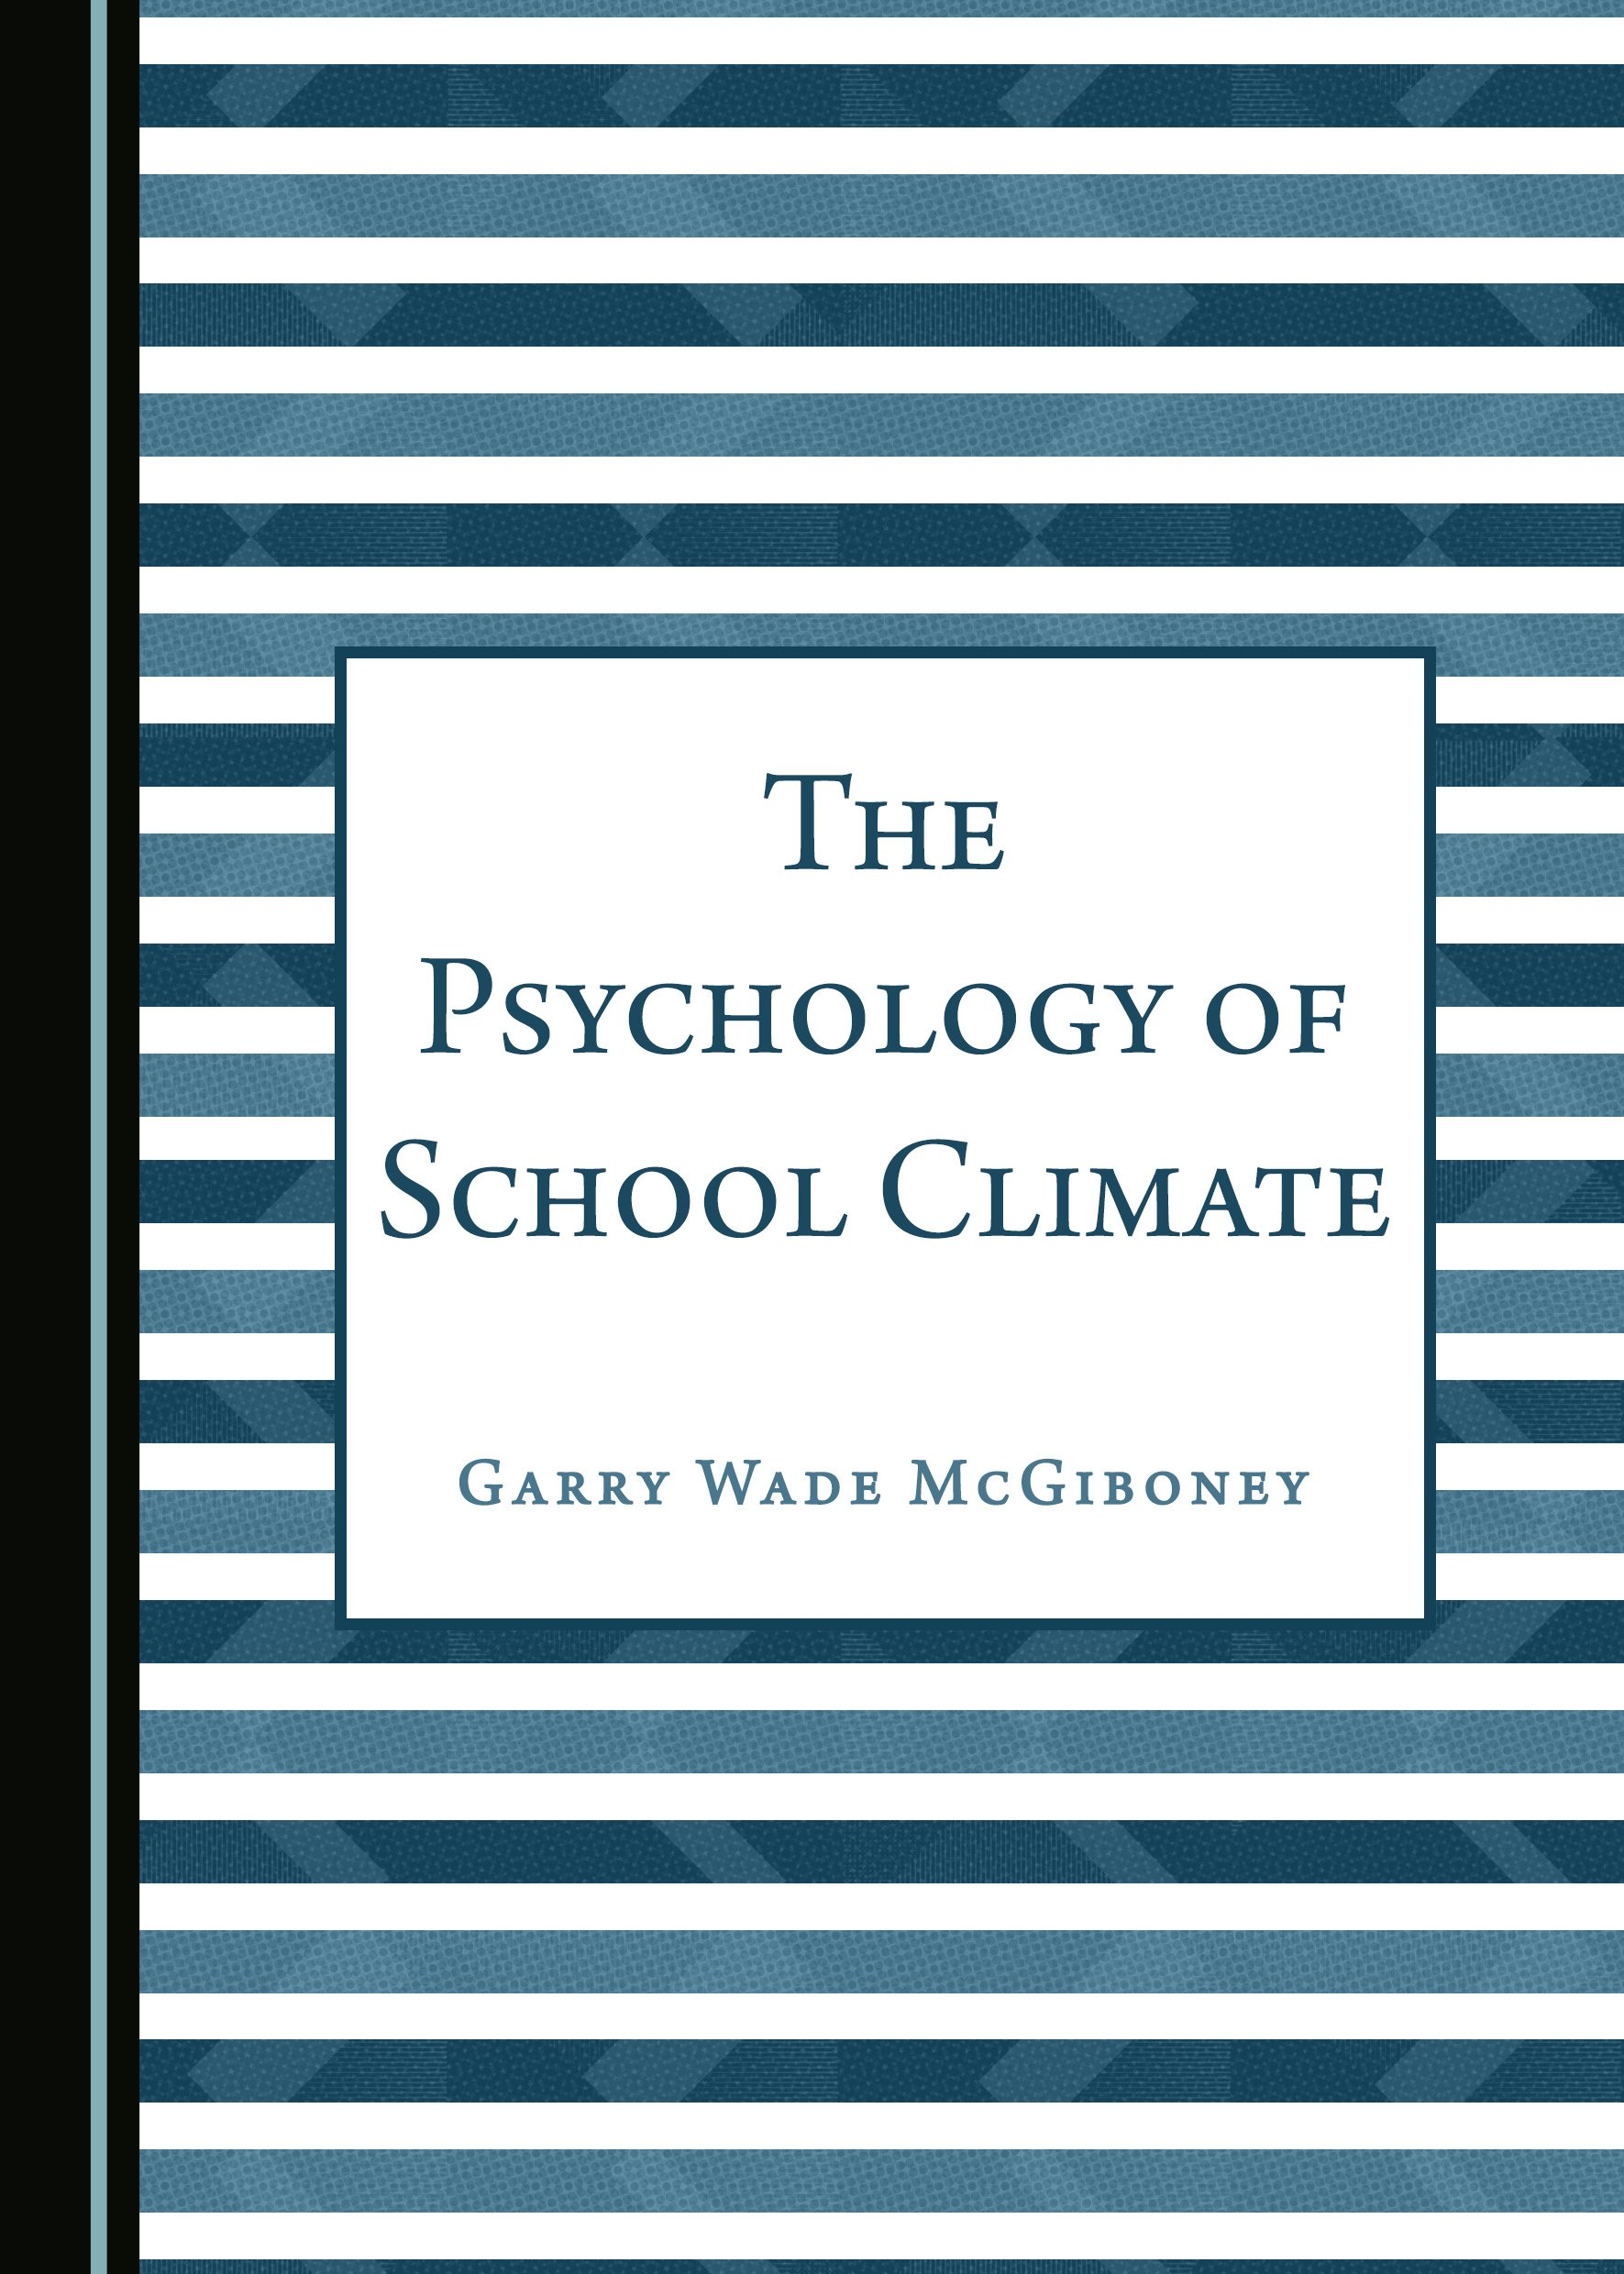 The Psychology of School Climate